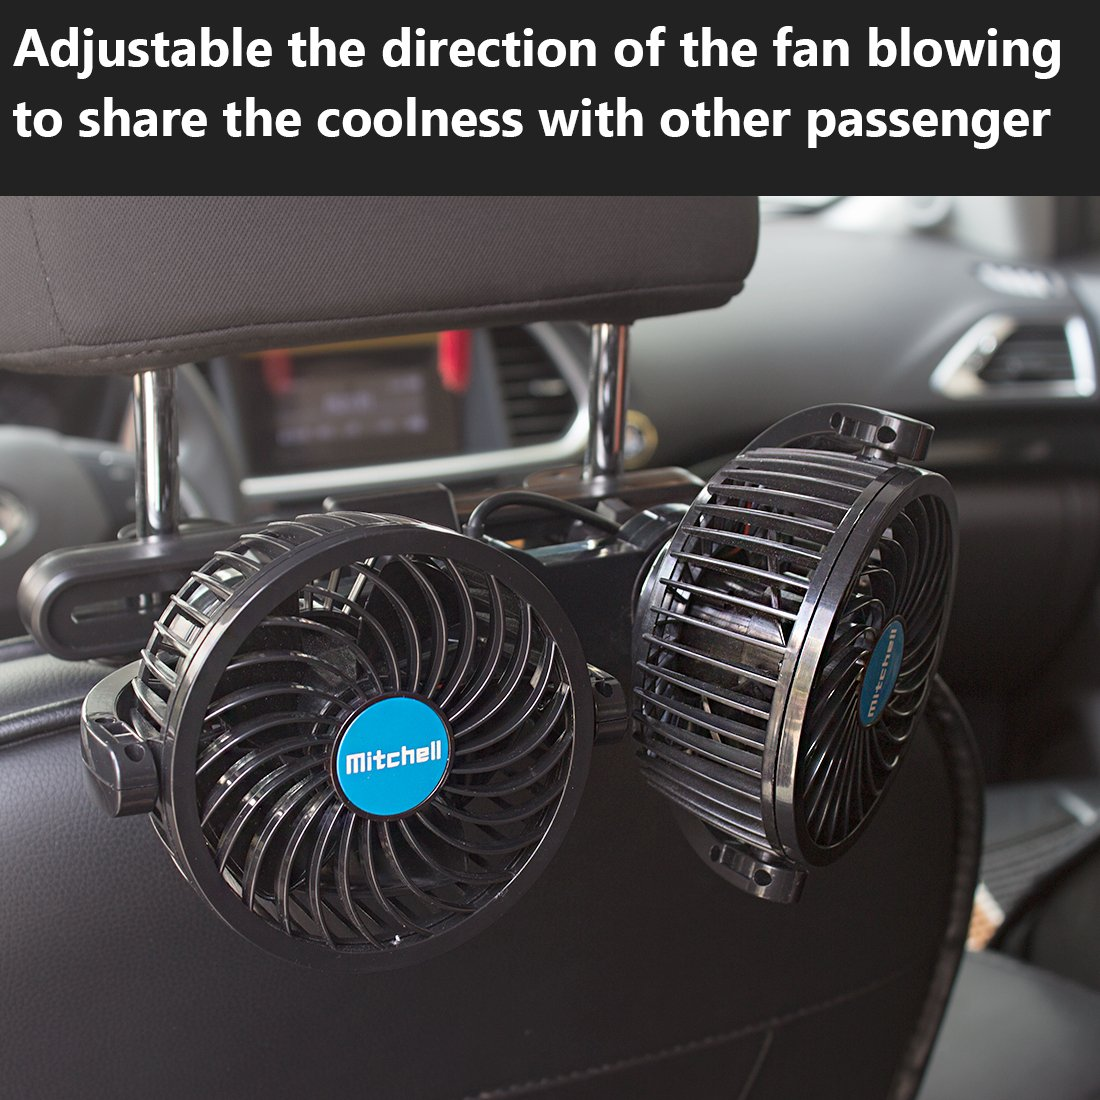 Poraxy Car Fans12v Electric Auto Cooling Fan Headrest 360 Degree Wiring Dual Fans W Thermal Switch And In Dash Rotatable 2 Speed Head Rear Seat Air For Sedan Suv Rv Boat P006 Ventilation